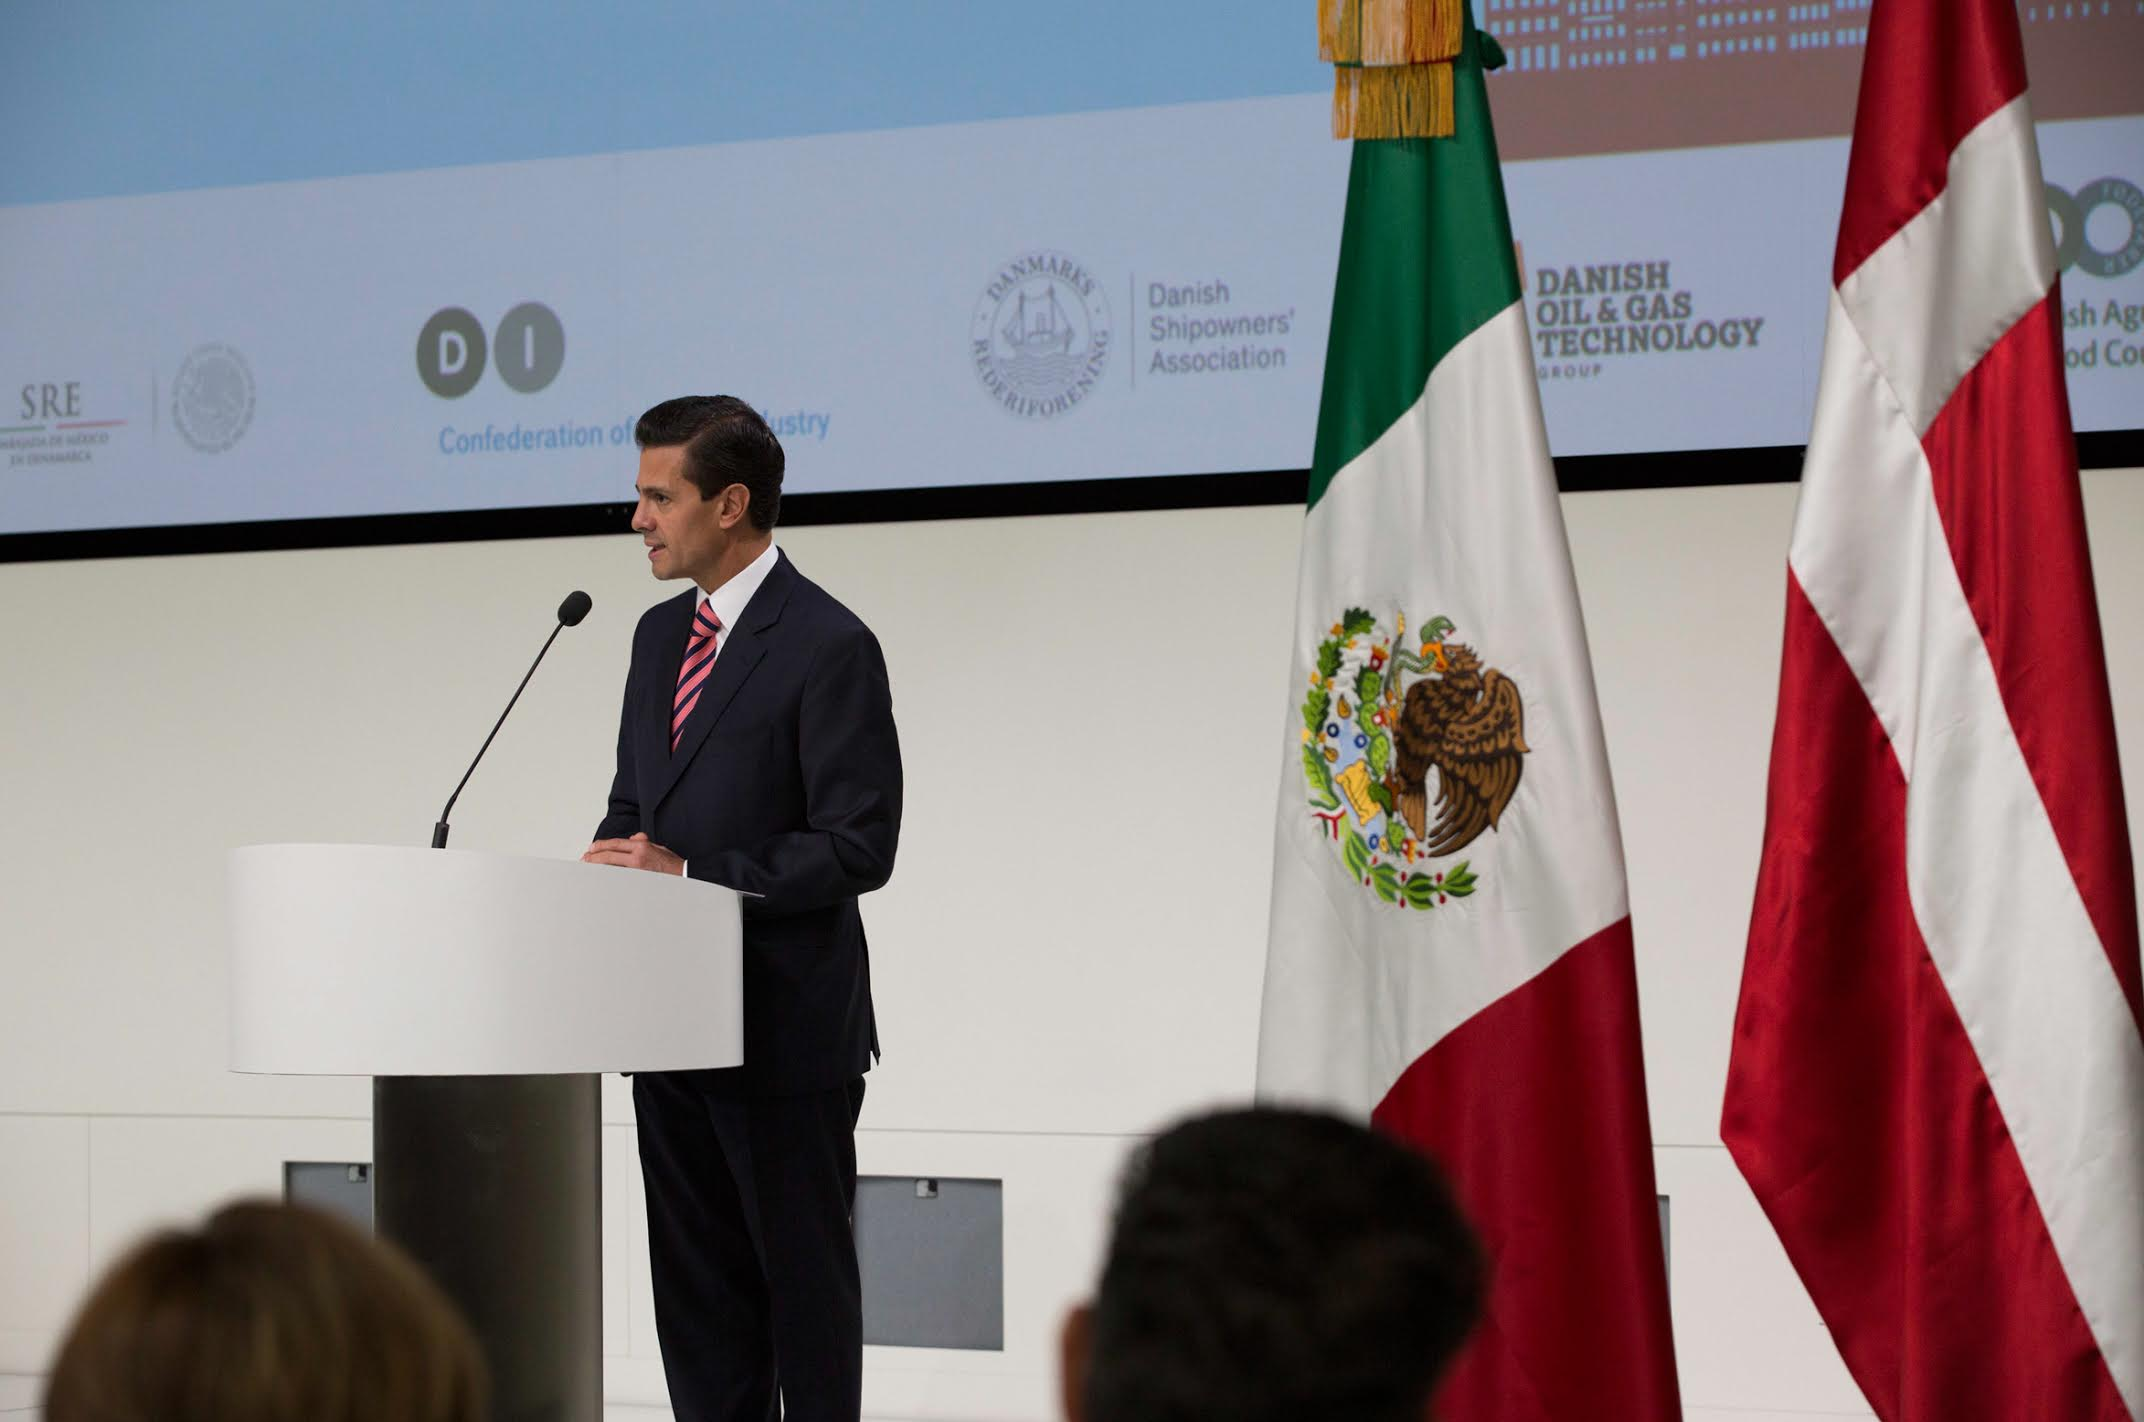 President Enrique Peña Nieto met with Danish business leaders and CEOs of Danish companies with interests in Mexico.